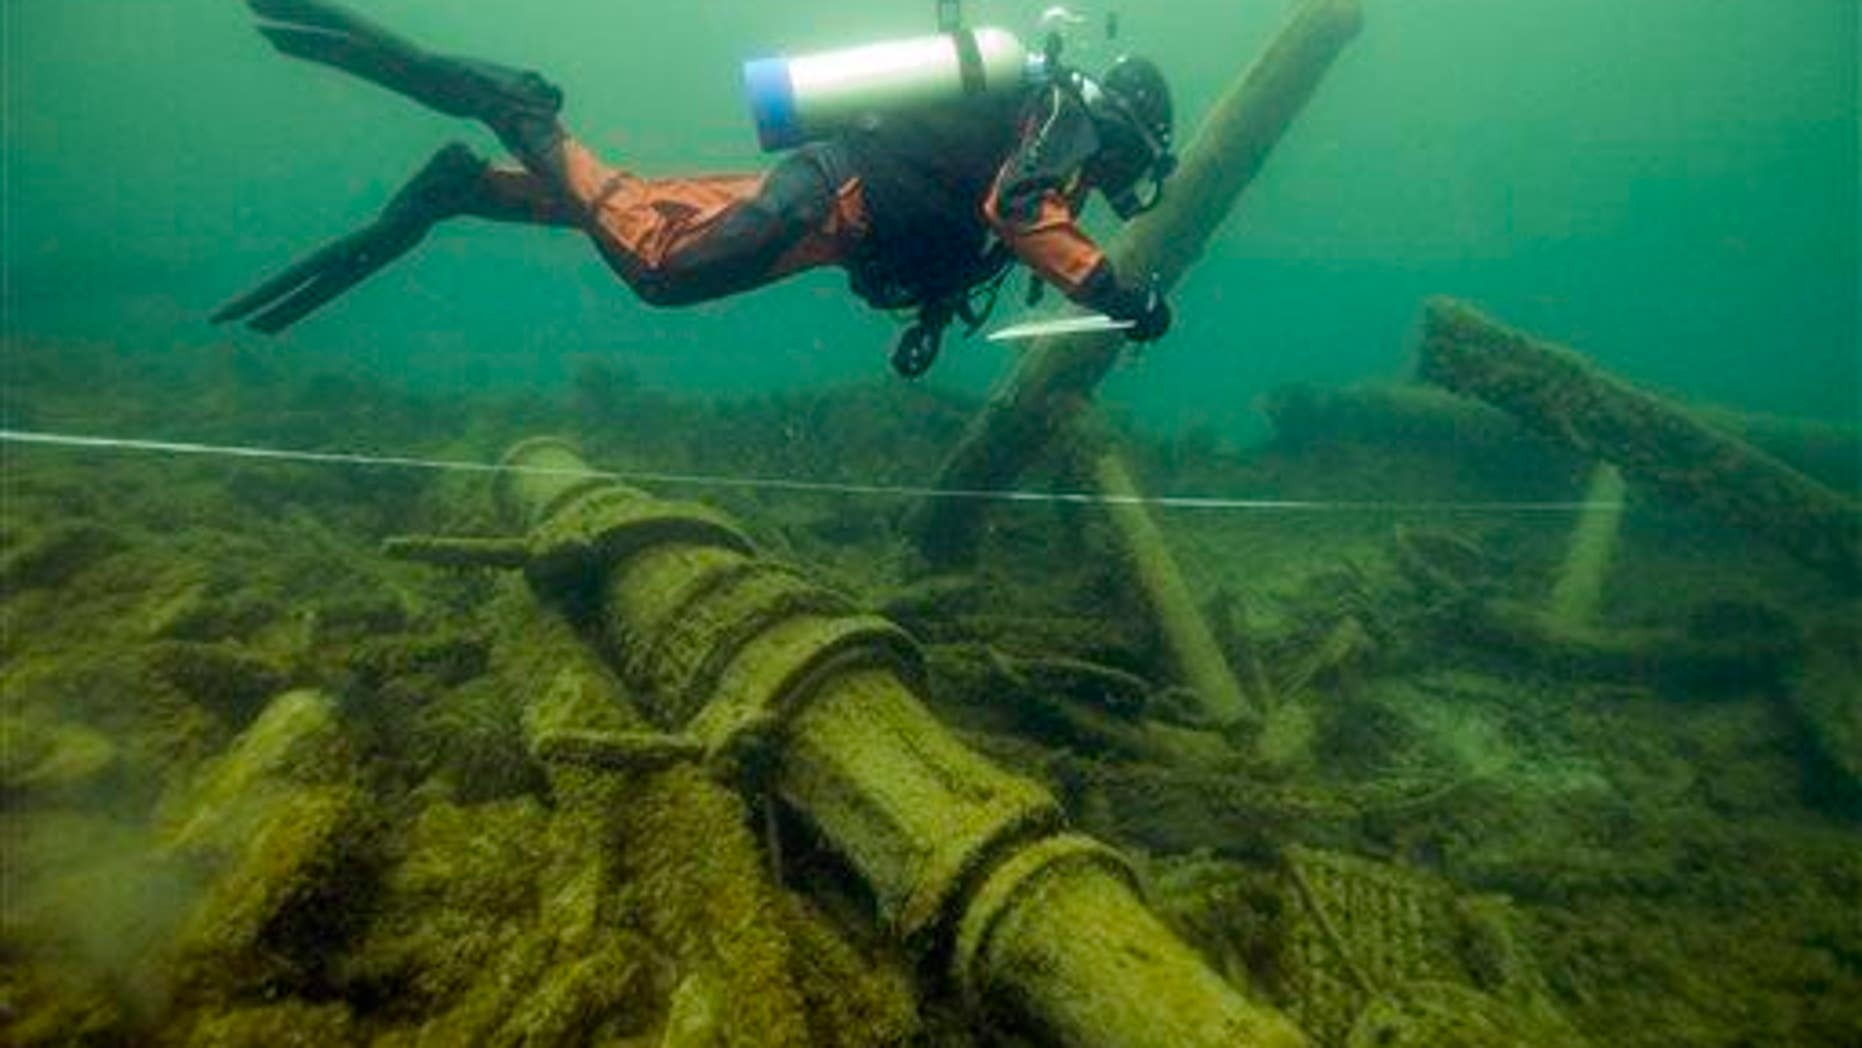 In a 2007 file photo provided by the NOAA, Thunder Bay National Marine Sanctuary, a diver swims over another shipwreck in Michigan.